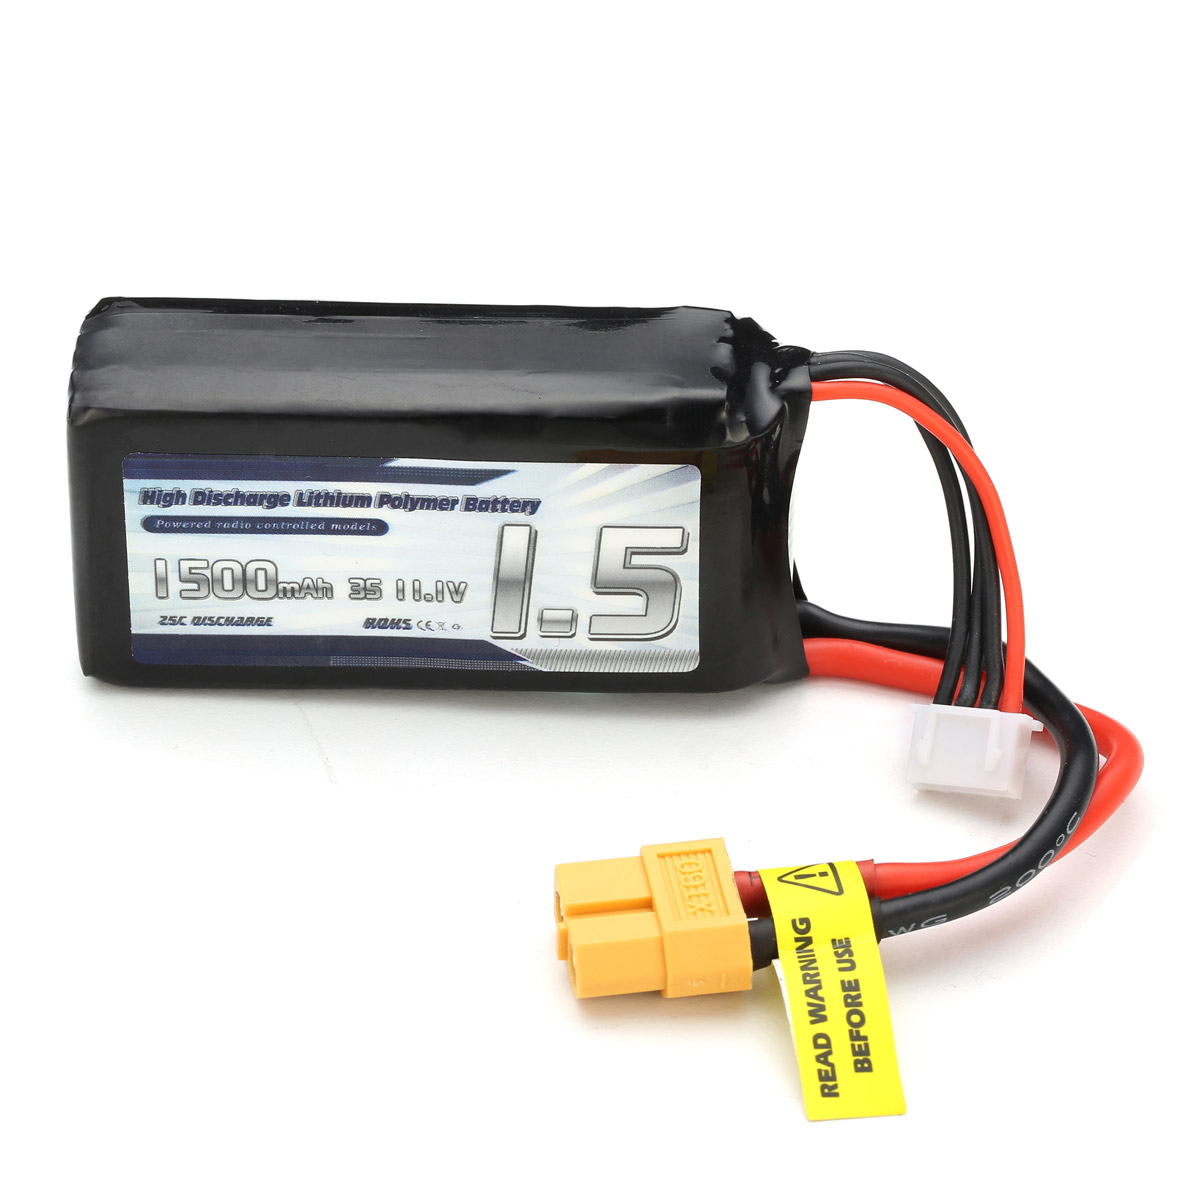 Eachine Wizard X220 Racer 250 Drone Spare Part 1500mah 3s 111v Xt60 Lippo 2200mah Tplug Rc Plug Parallel Charging Board 6 In 1 Connection 40mm Bananer For Imax B6